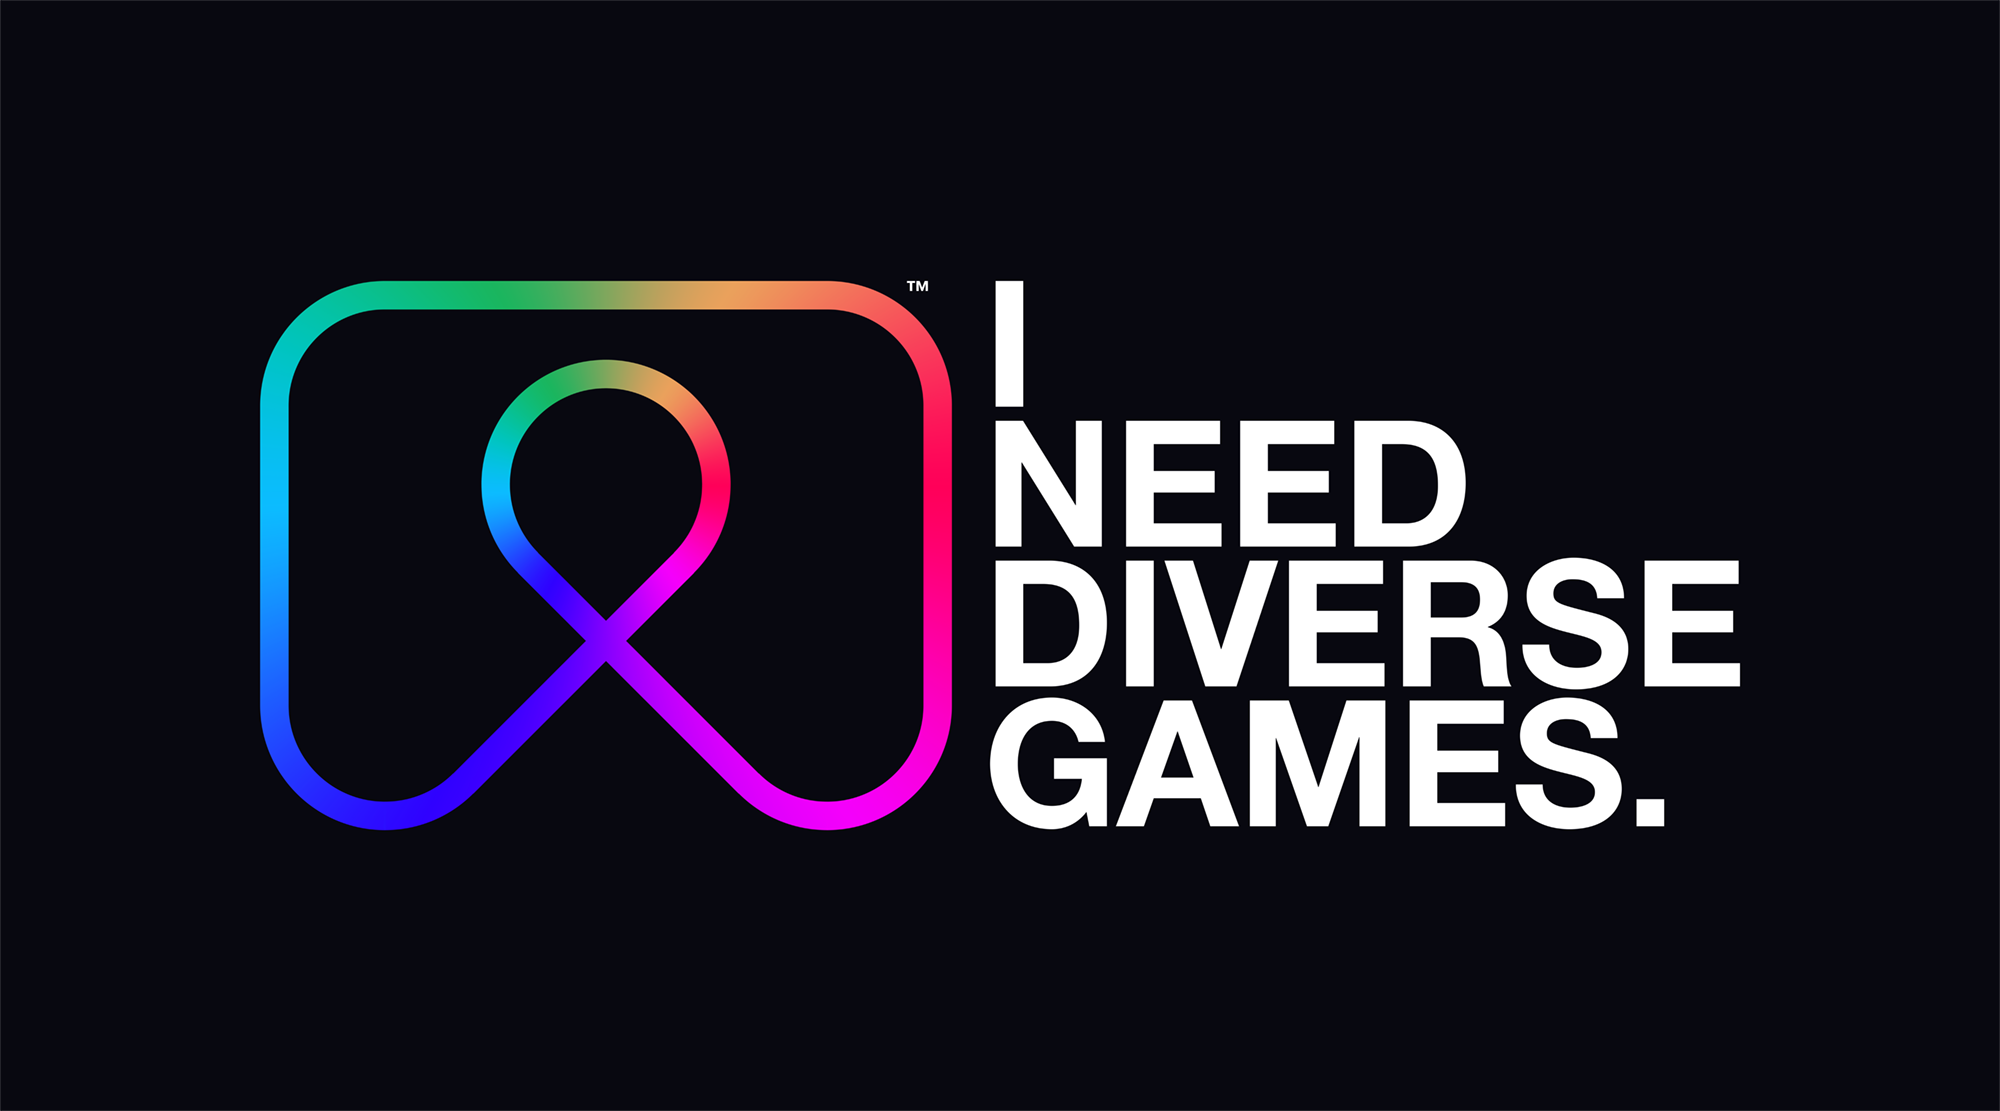 I Need Diverse Games